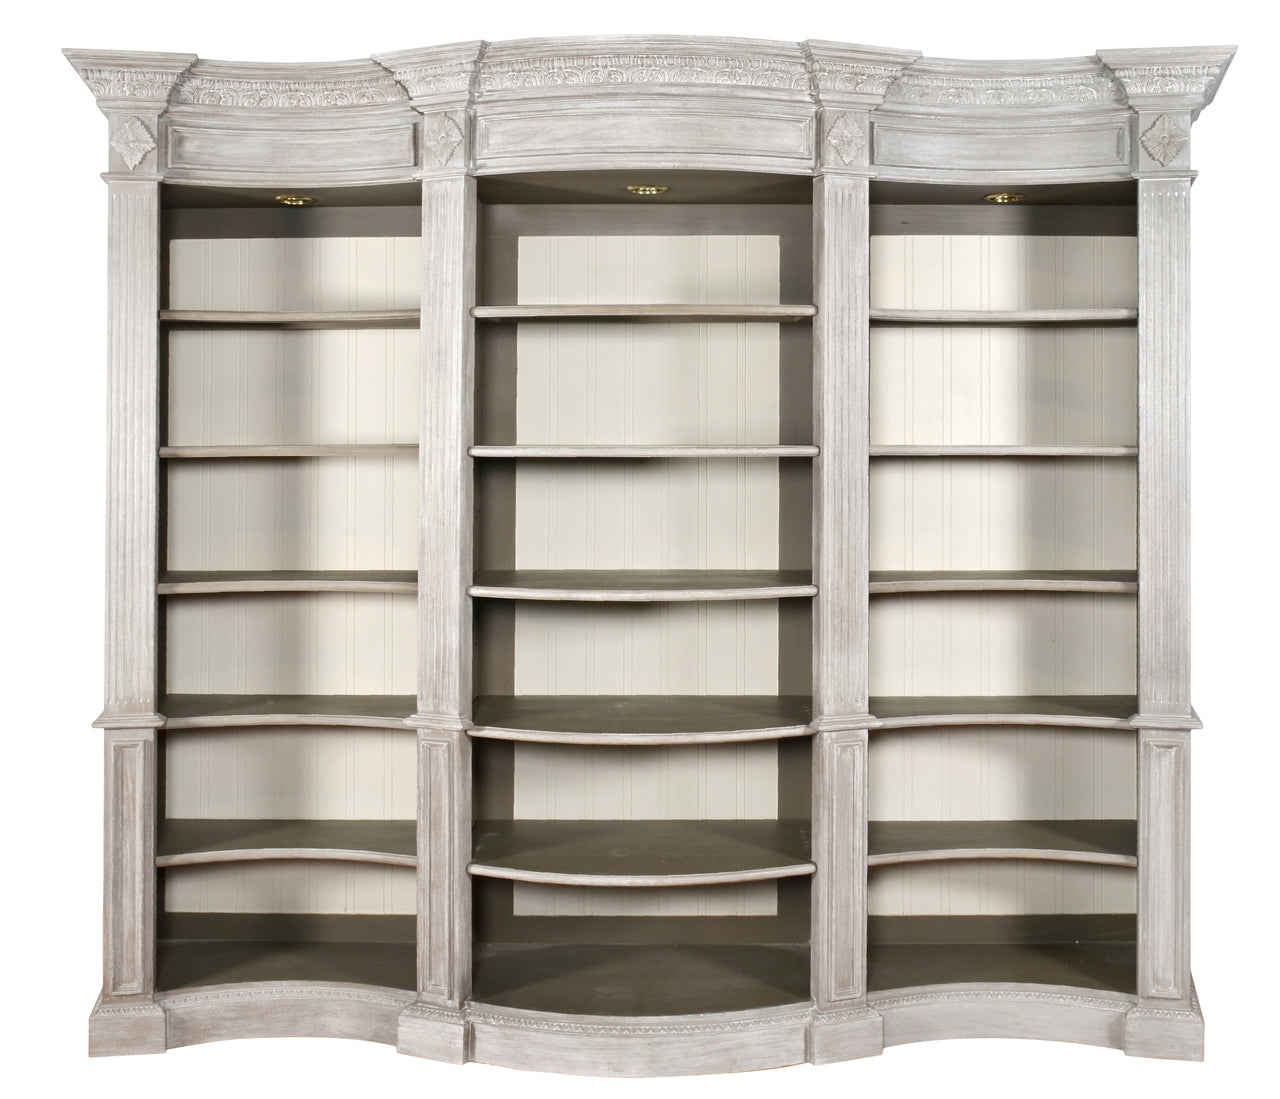 Windsor Curved Library Bookcase Display Cabinet Misty Grey